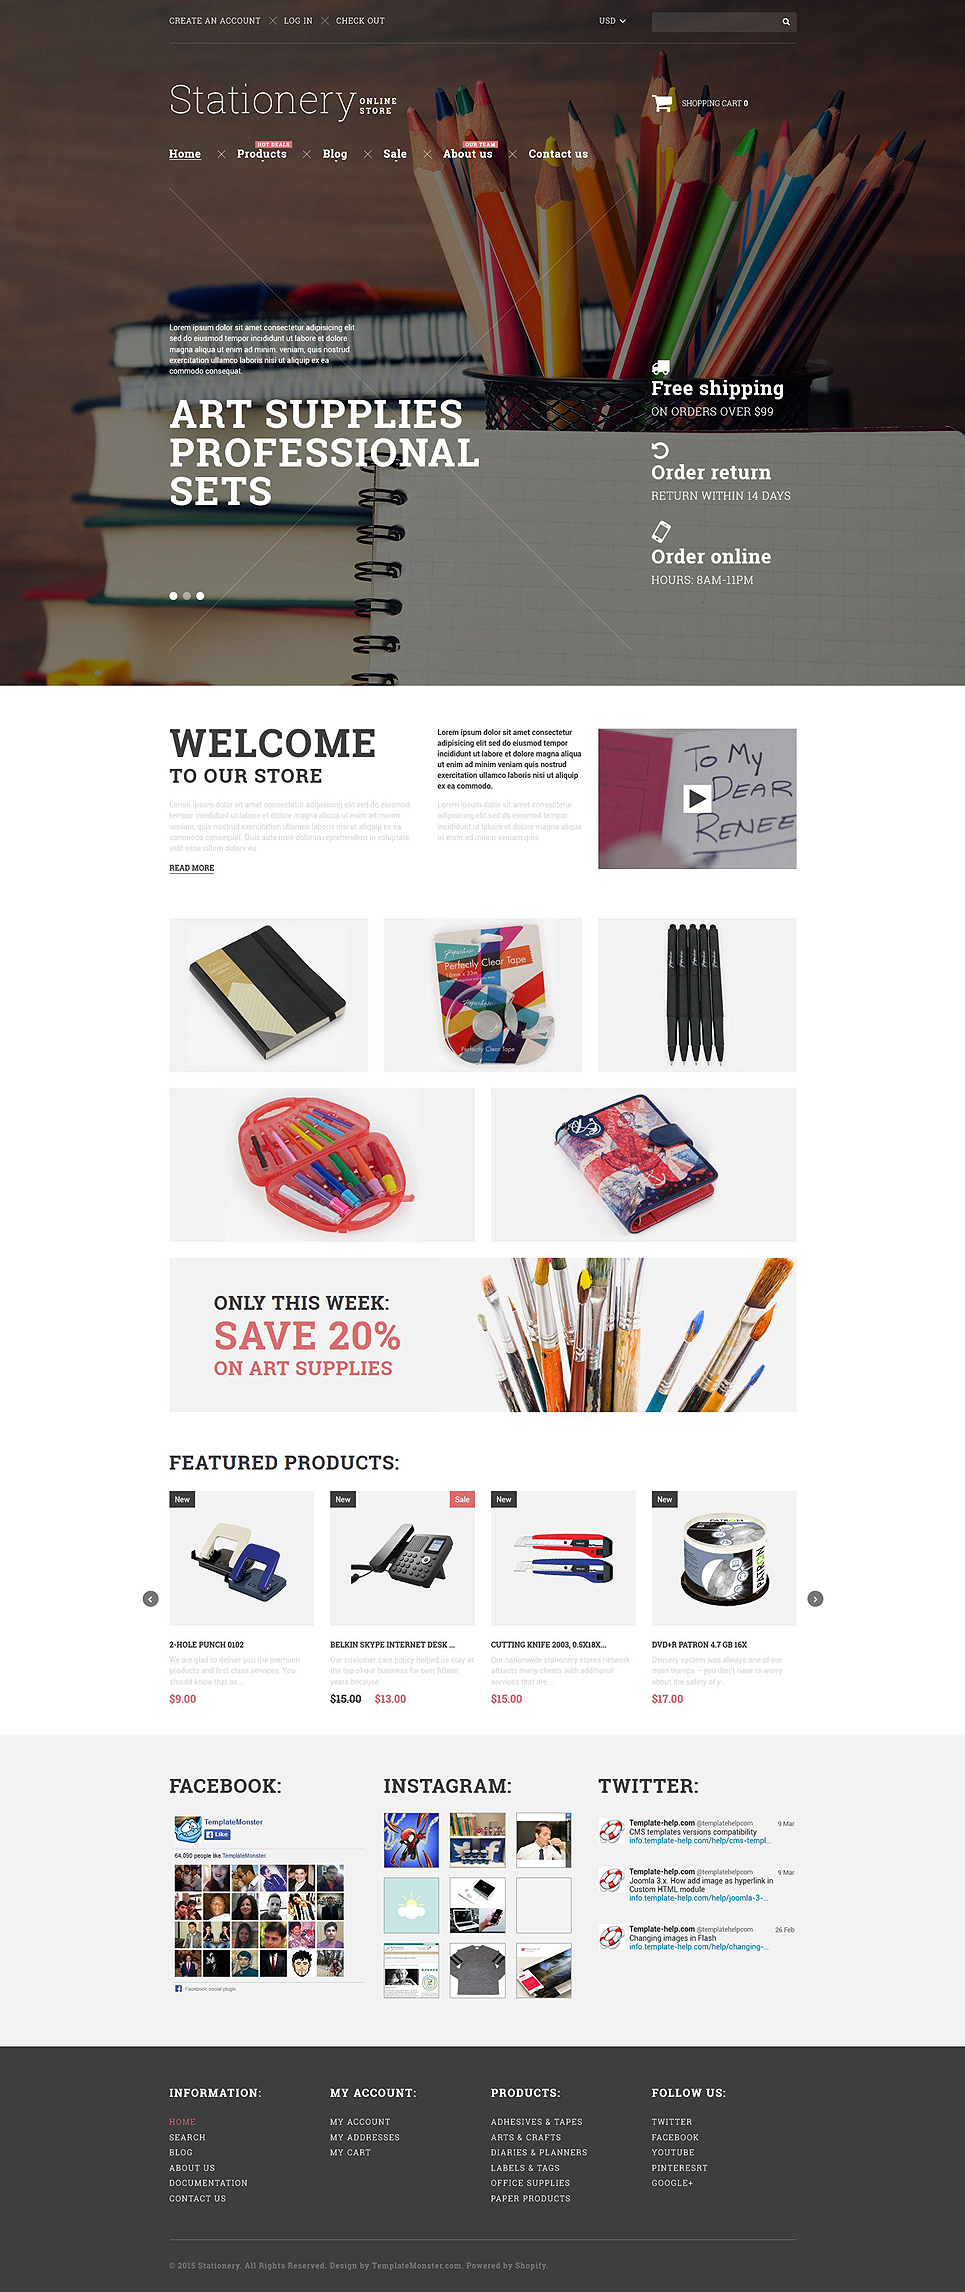 Stationery Goods (ecommerce website theme) Item Picture